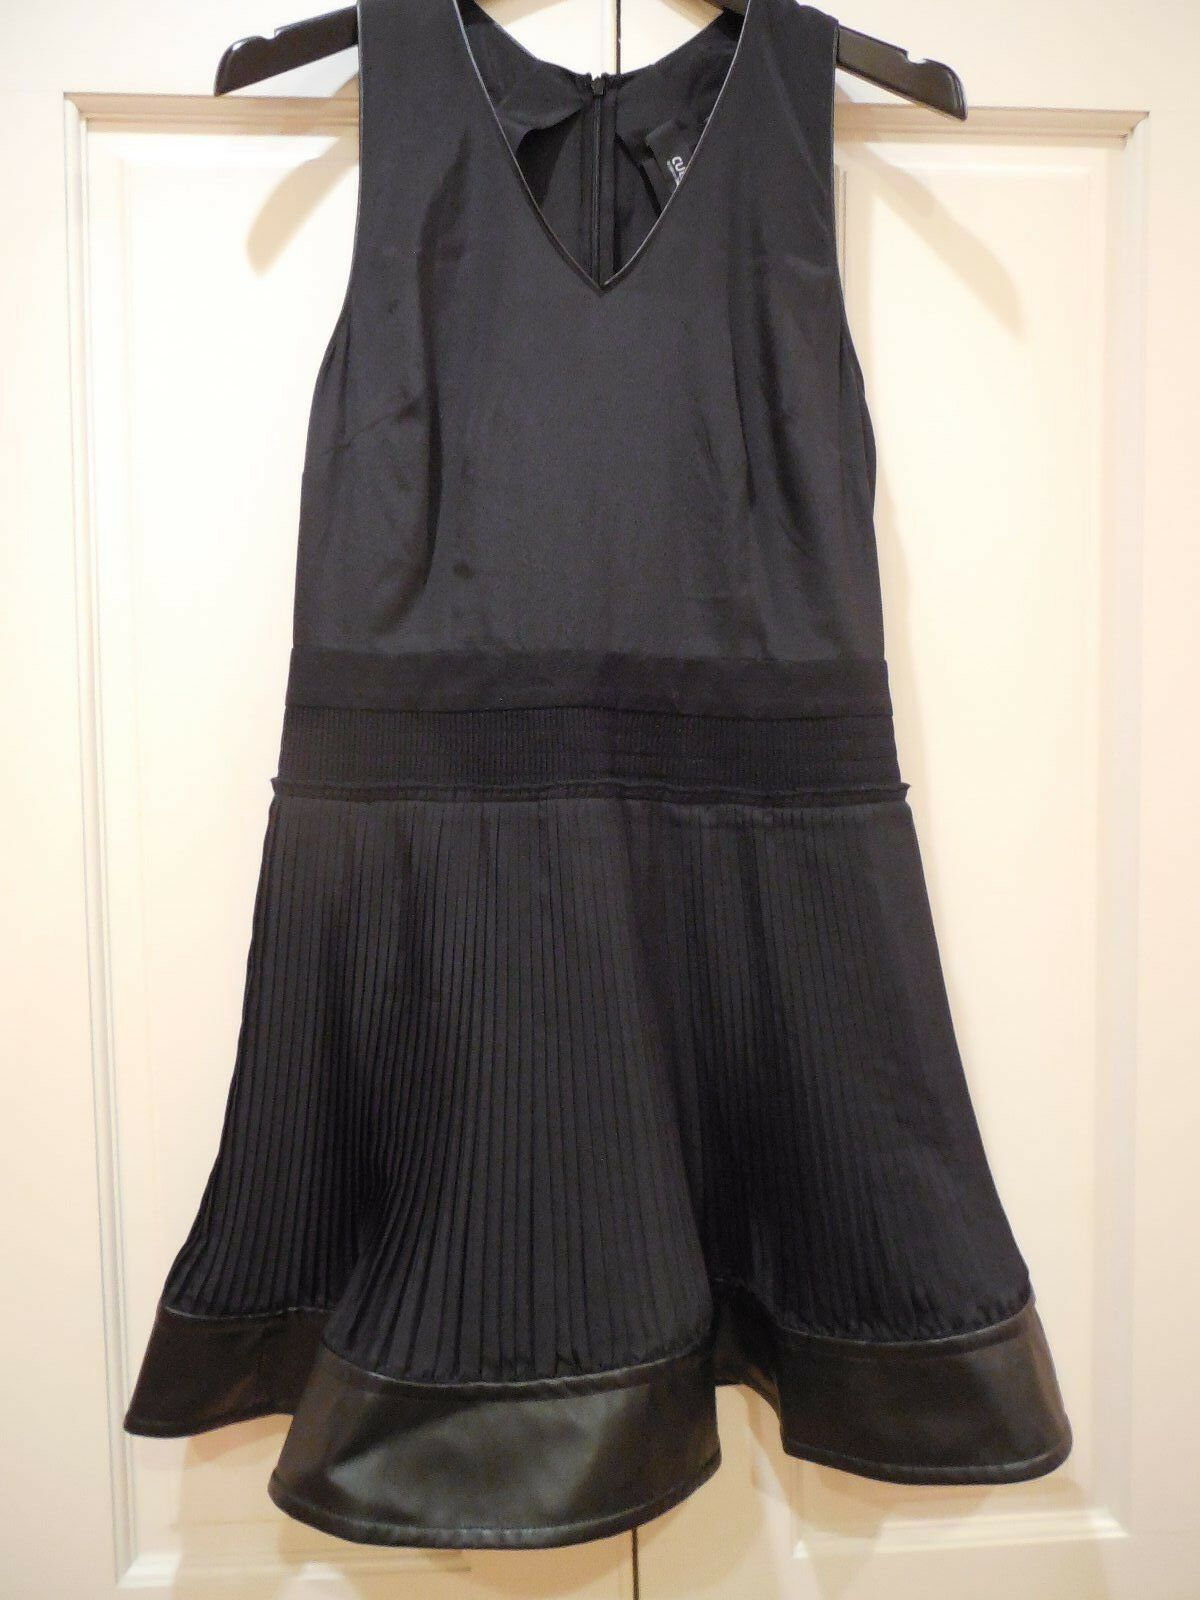 New schwarz Cocktail Dress Vegan Leather Trim  Größe 6 Flirty Pleated Sexy